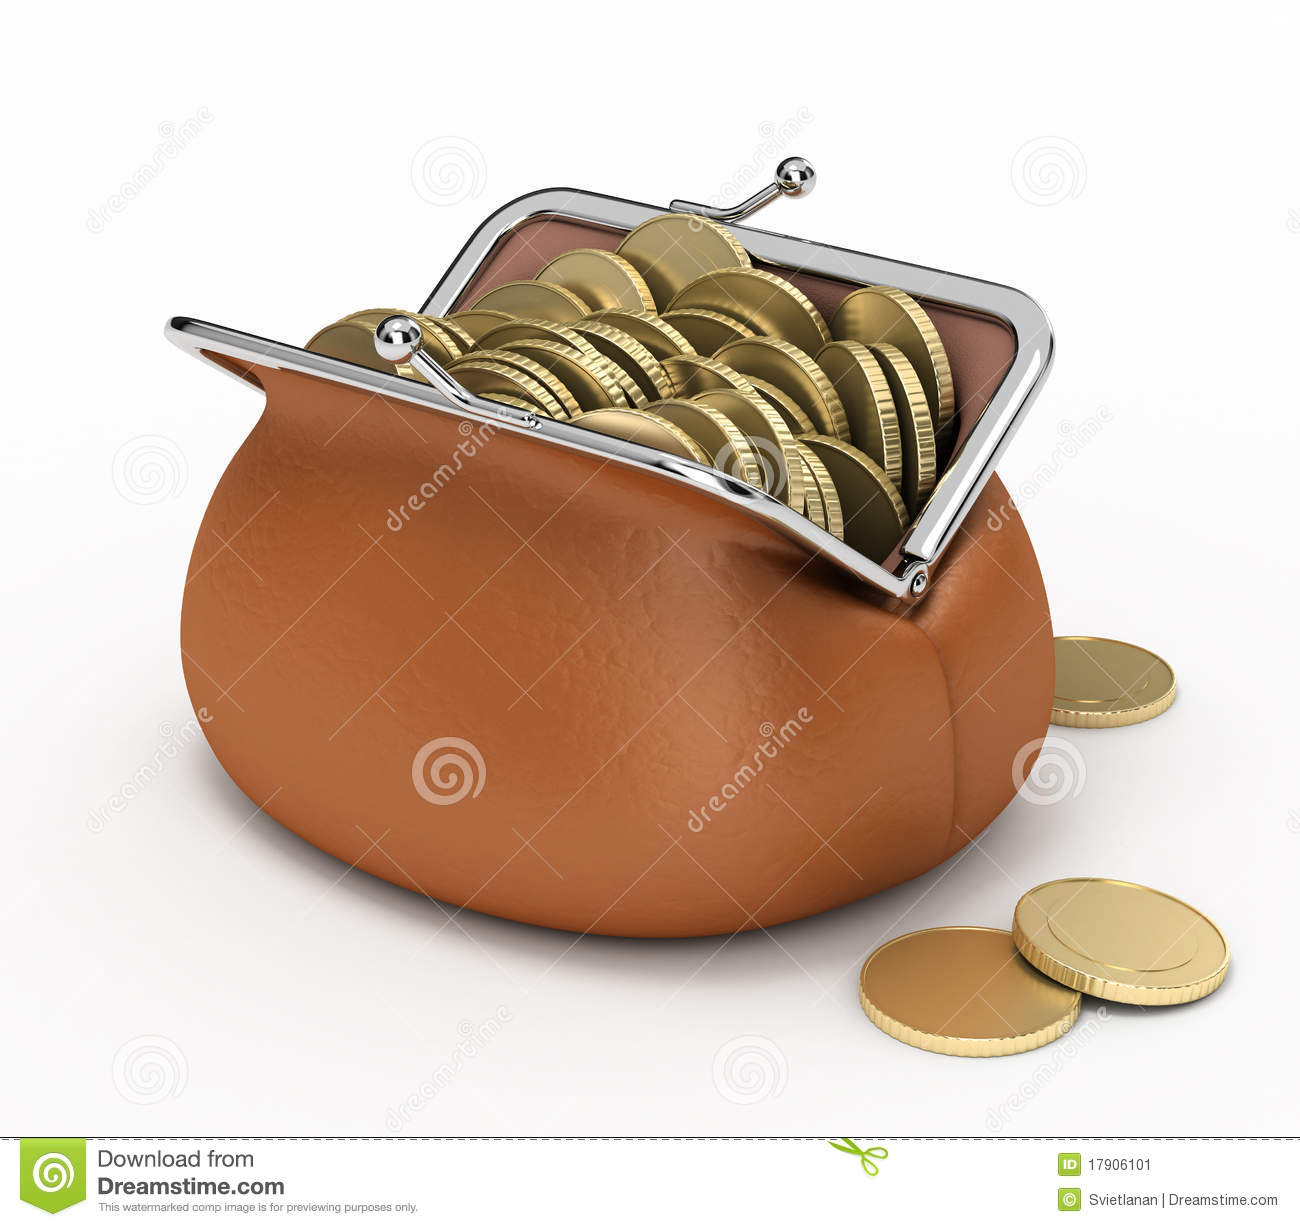 coins in peoples pockets and purses are